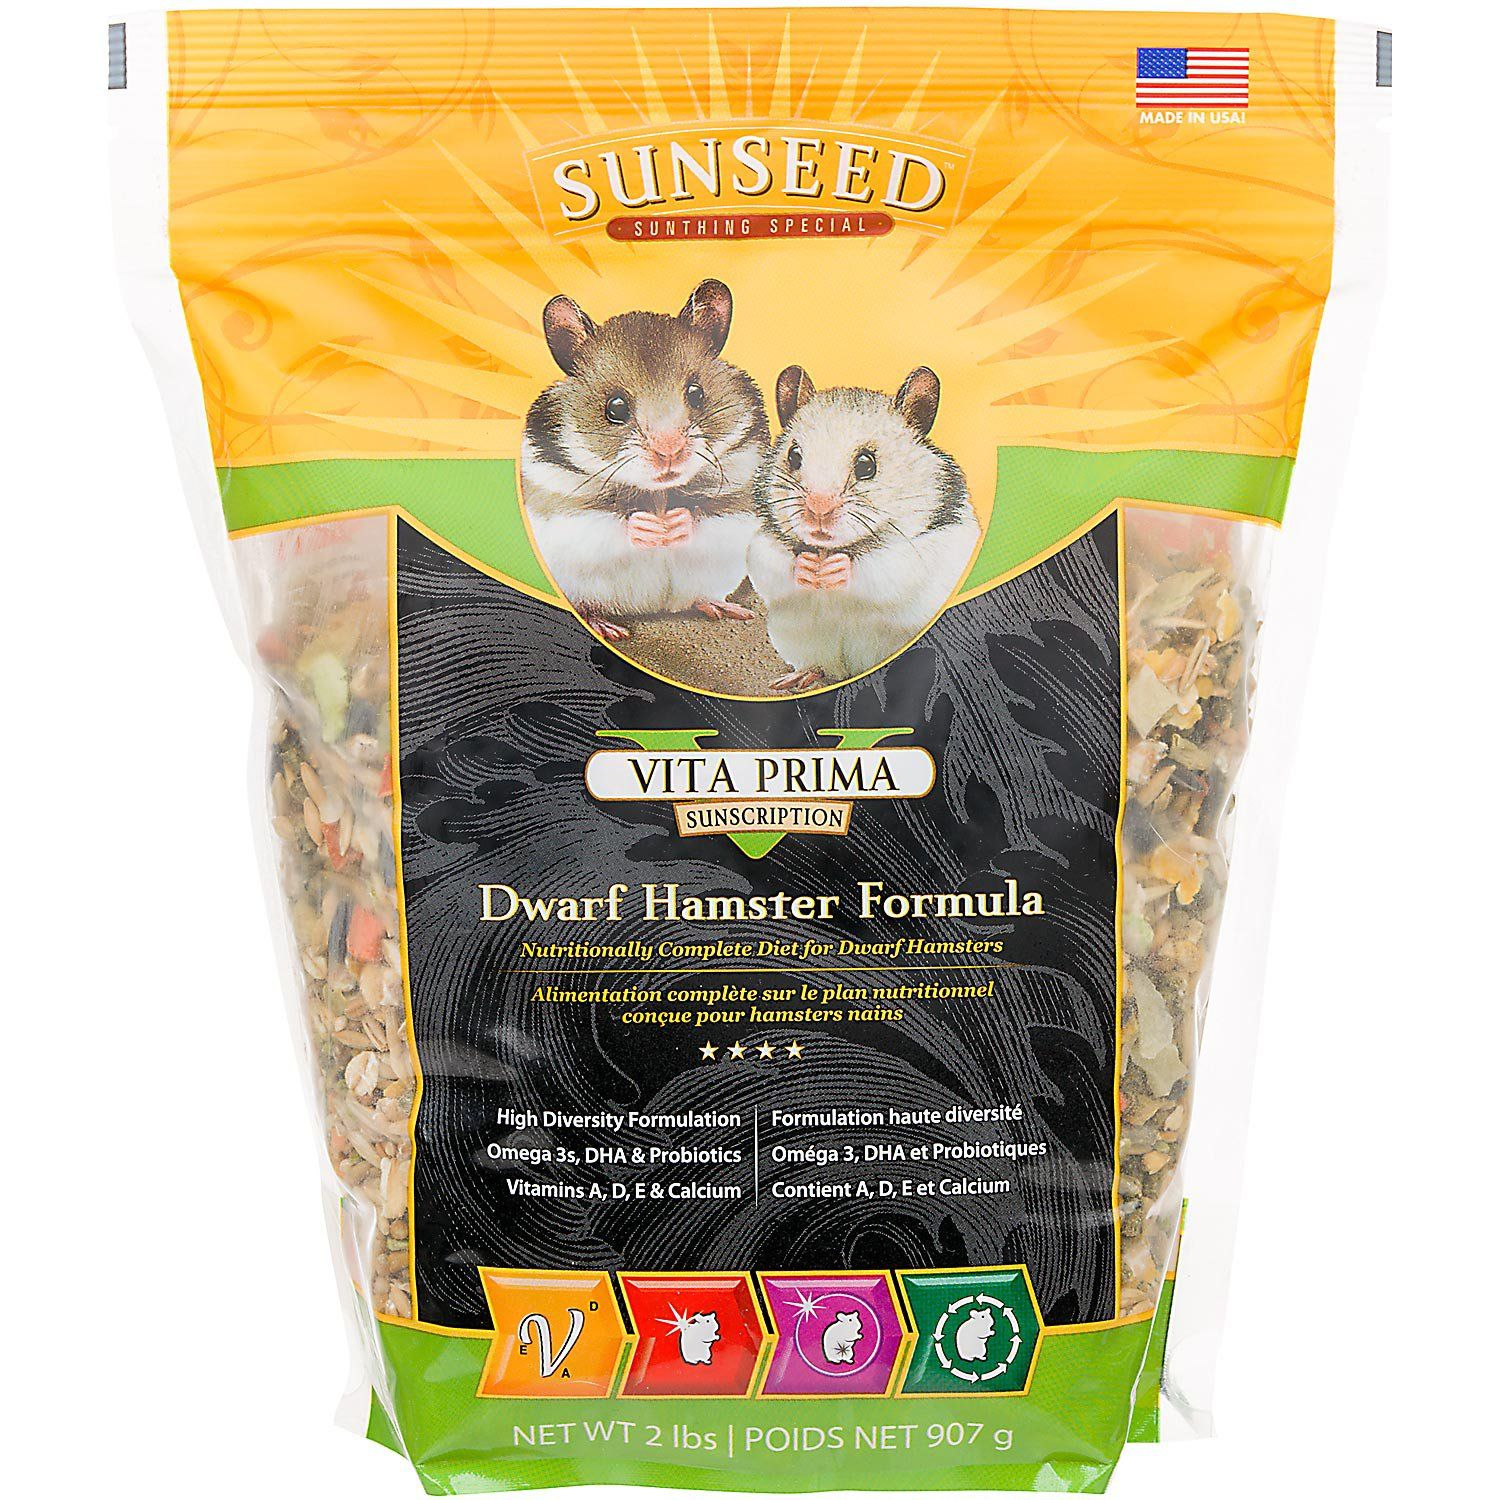 Nutritious, high-diversity dietFortified with vitamins A, D, E & calciumMade in the USAResealable bag keeps food fresh & tasty